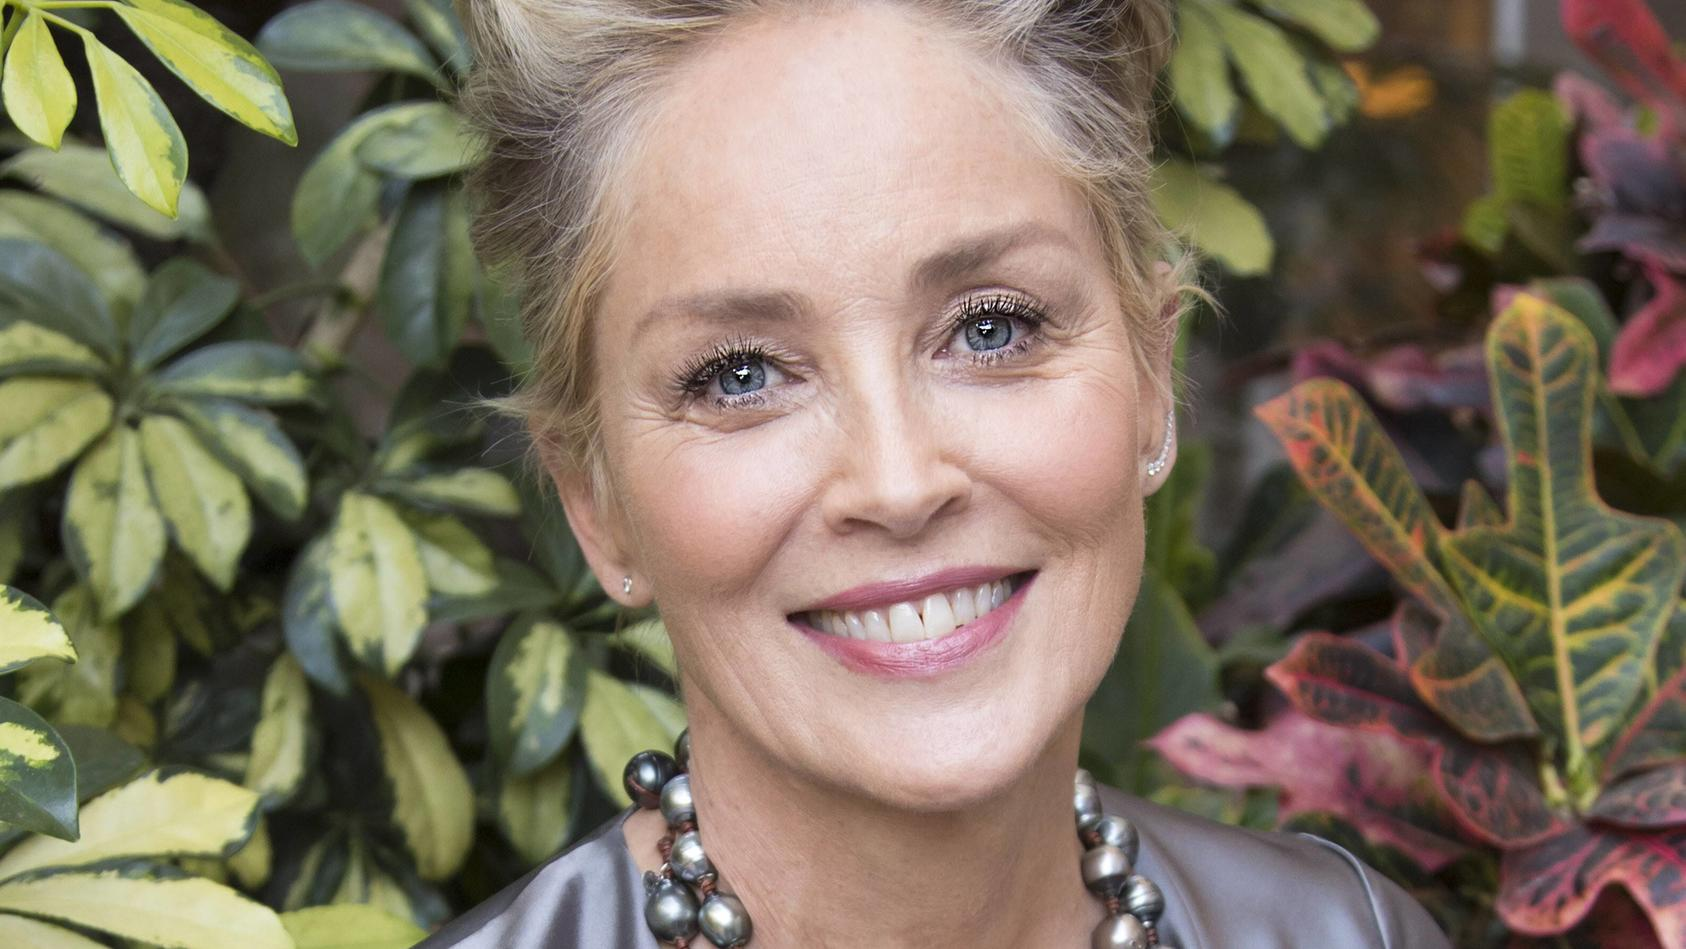 December 12, 2017 - Hollywood, California, U.S. - American Actress SHARON STONE promotes the movie Mosaic in Hollywood.